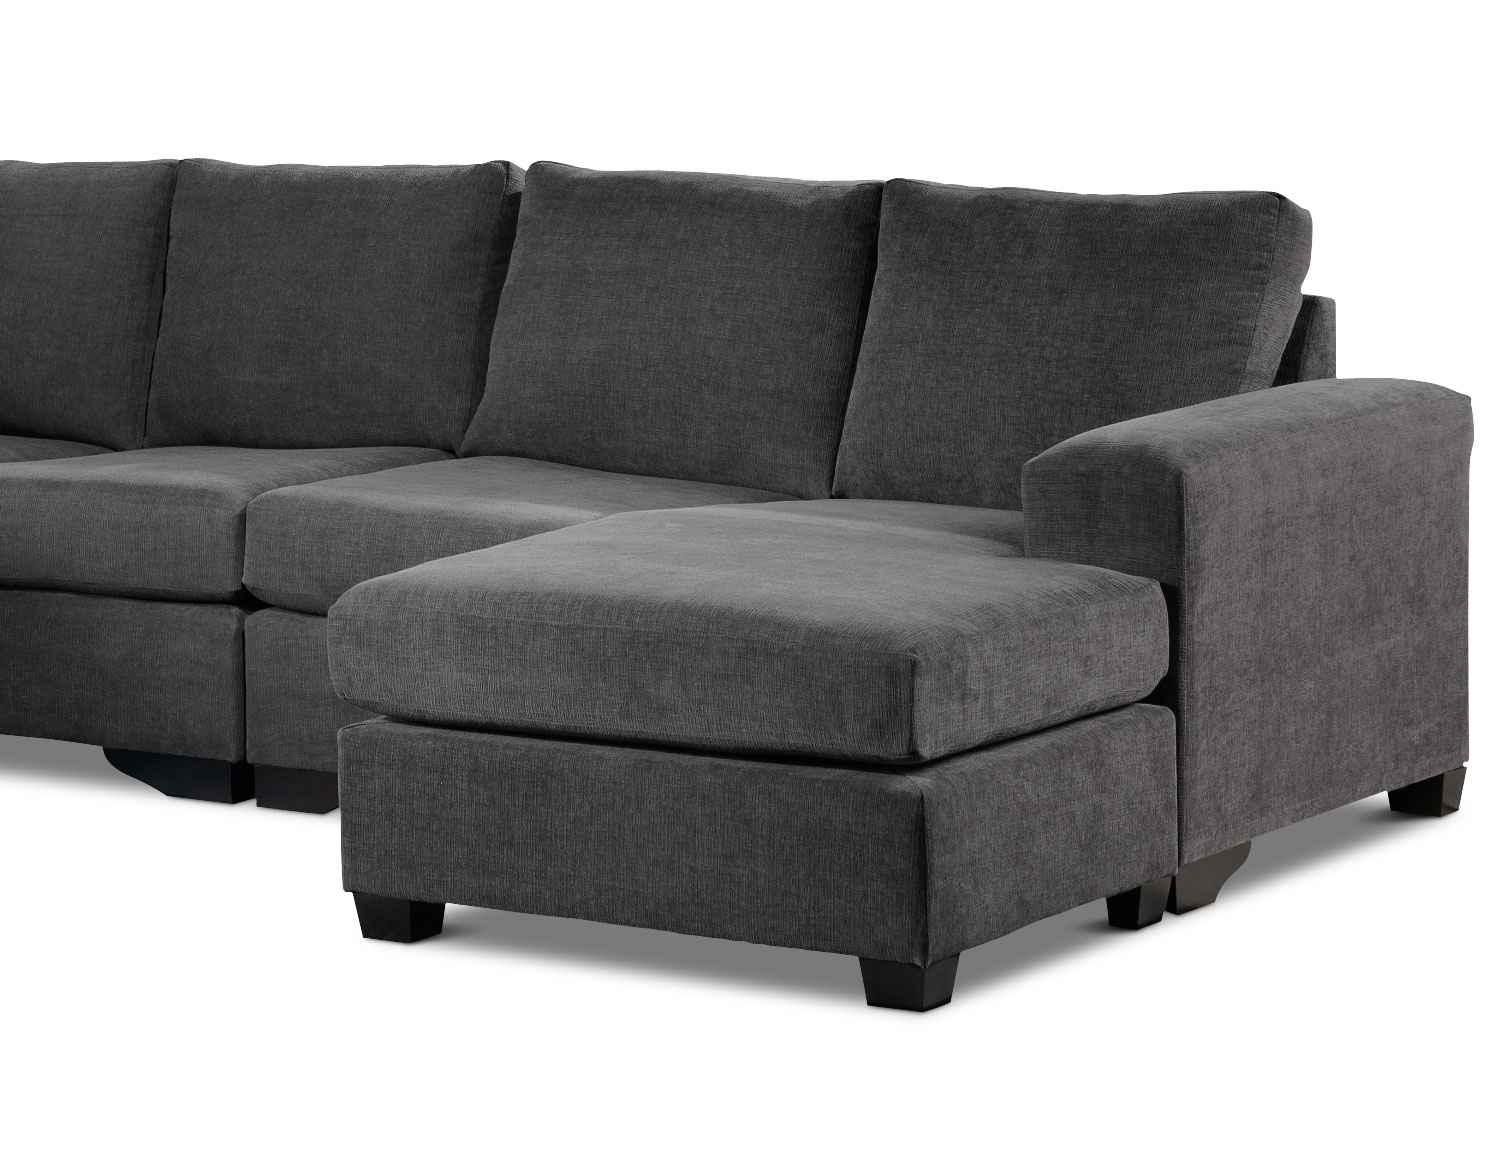 Danielle 3 Piece Sectional With Right Facing Corner Wedge – Grey Intended For Leons Sectional Sofas (View 4 of 10)